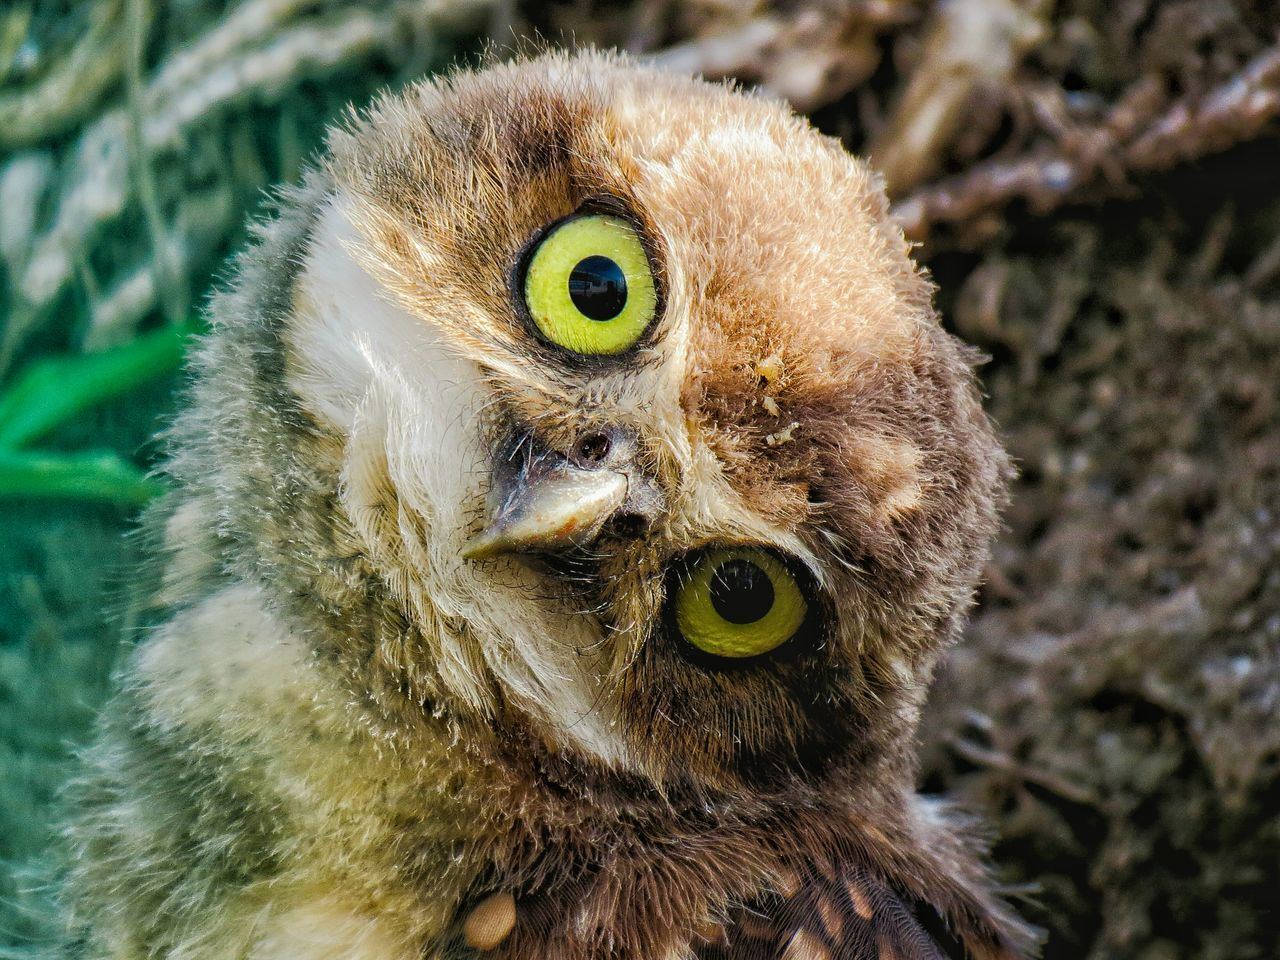 The OO Mission Owl Owls Owl Eyes Naturelovers Popular Photo EyeEm Best Edits Hello World Popular EyeEm Vogel EyeEm Best Shots Popular Photos Nature_collection Nature Photography Nature Birds Of EyeEm  Birds_collection Birds Bird Animal Photography Animal Themes Animal Animals In The Wild Animals